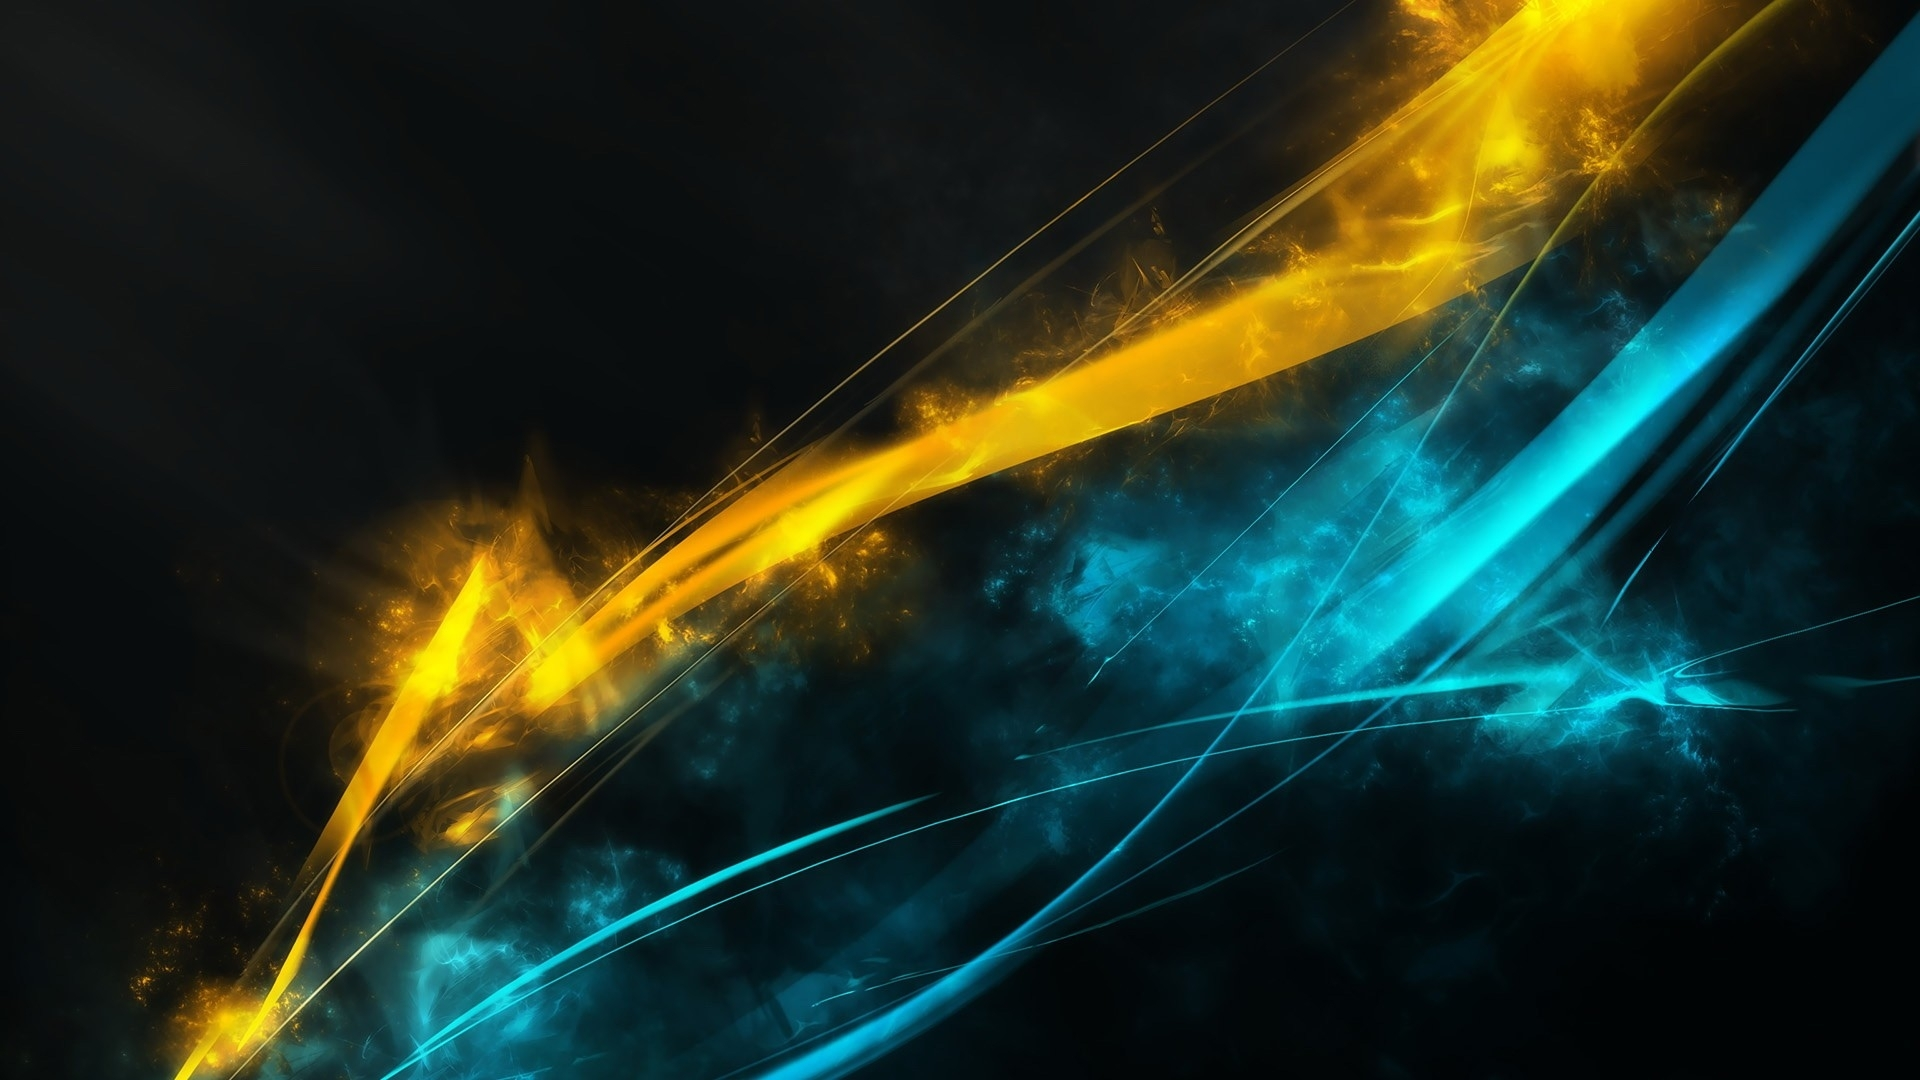 abstract full hd wallpaper and background image | 1920x1080 | id:462549